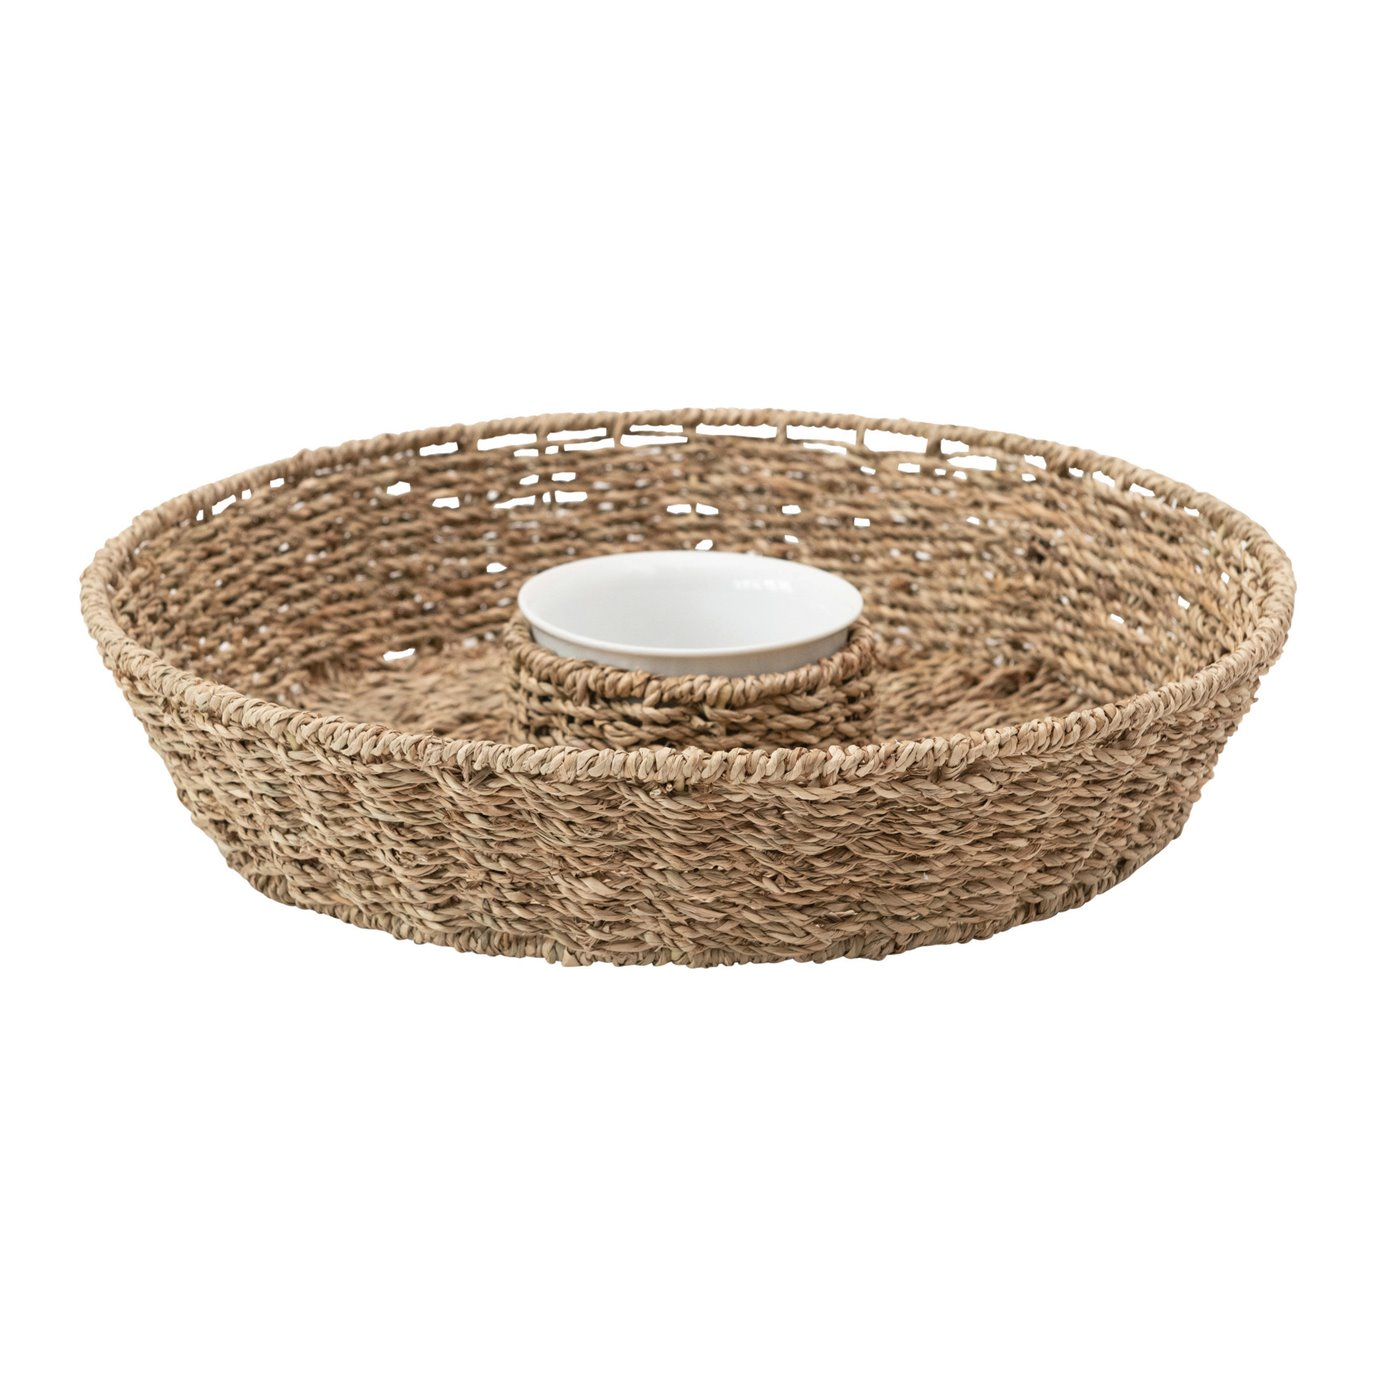 Hand-Woven Seagrass Chip & Dip Basket with 6 oz. Ceramic Bowl, Set of 2